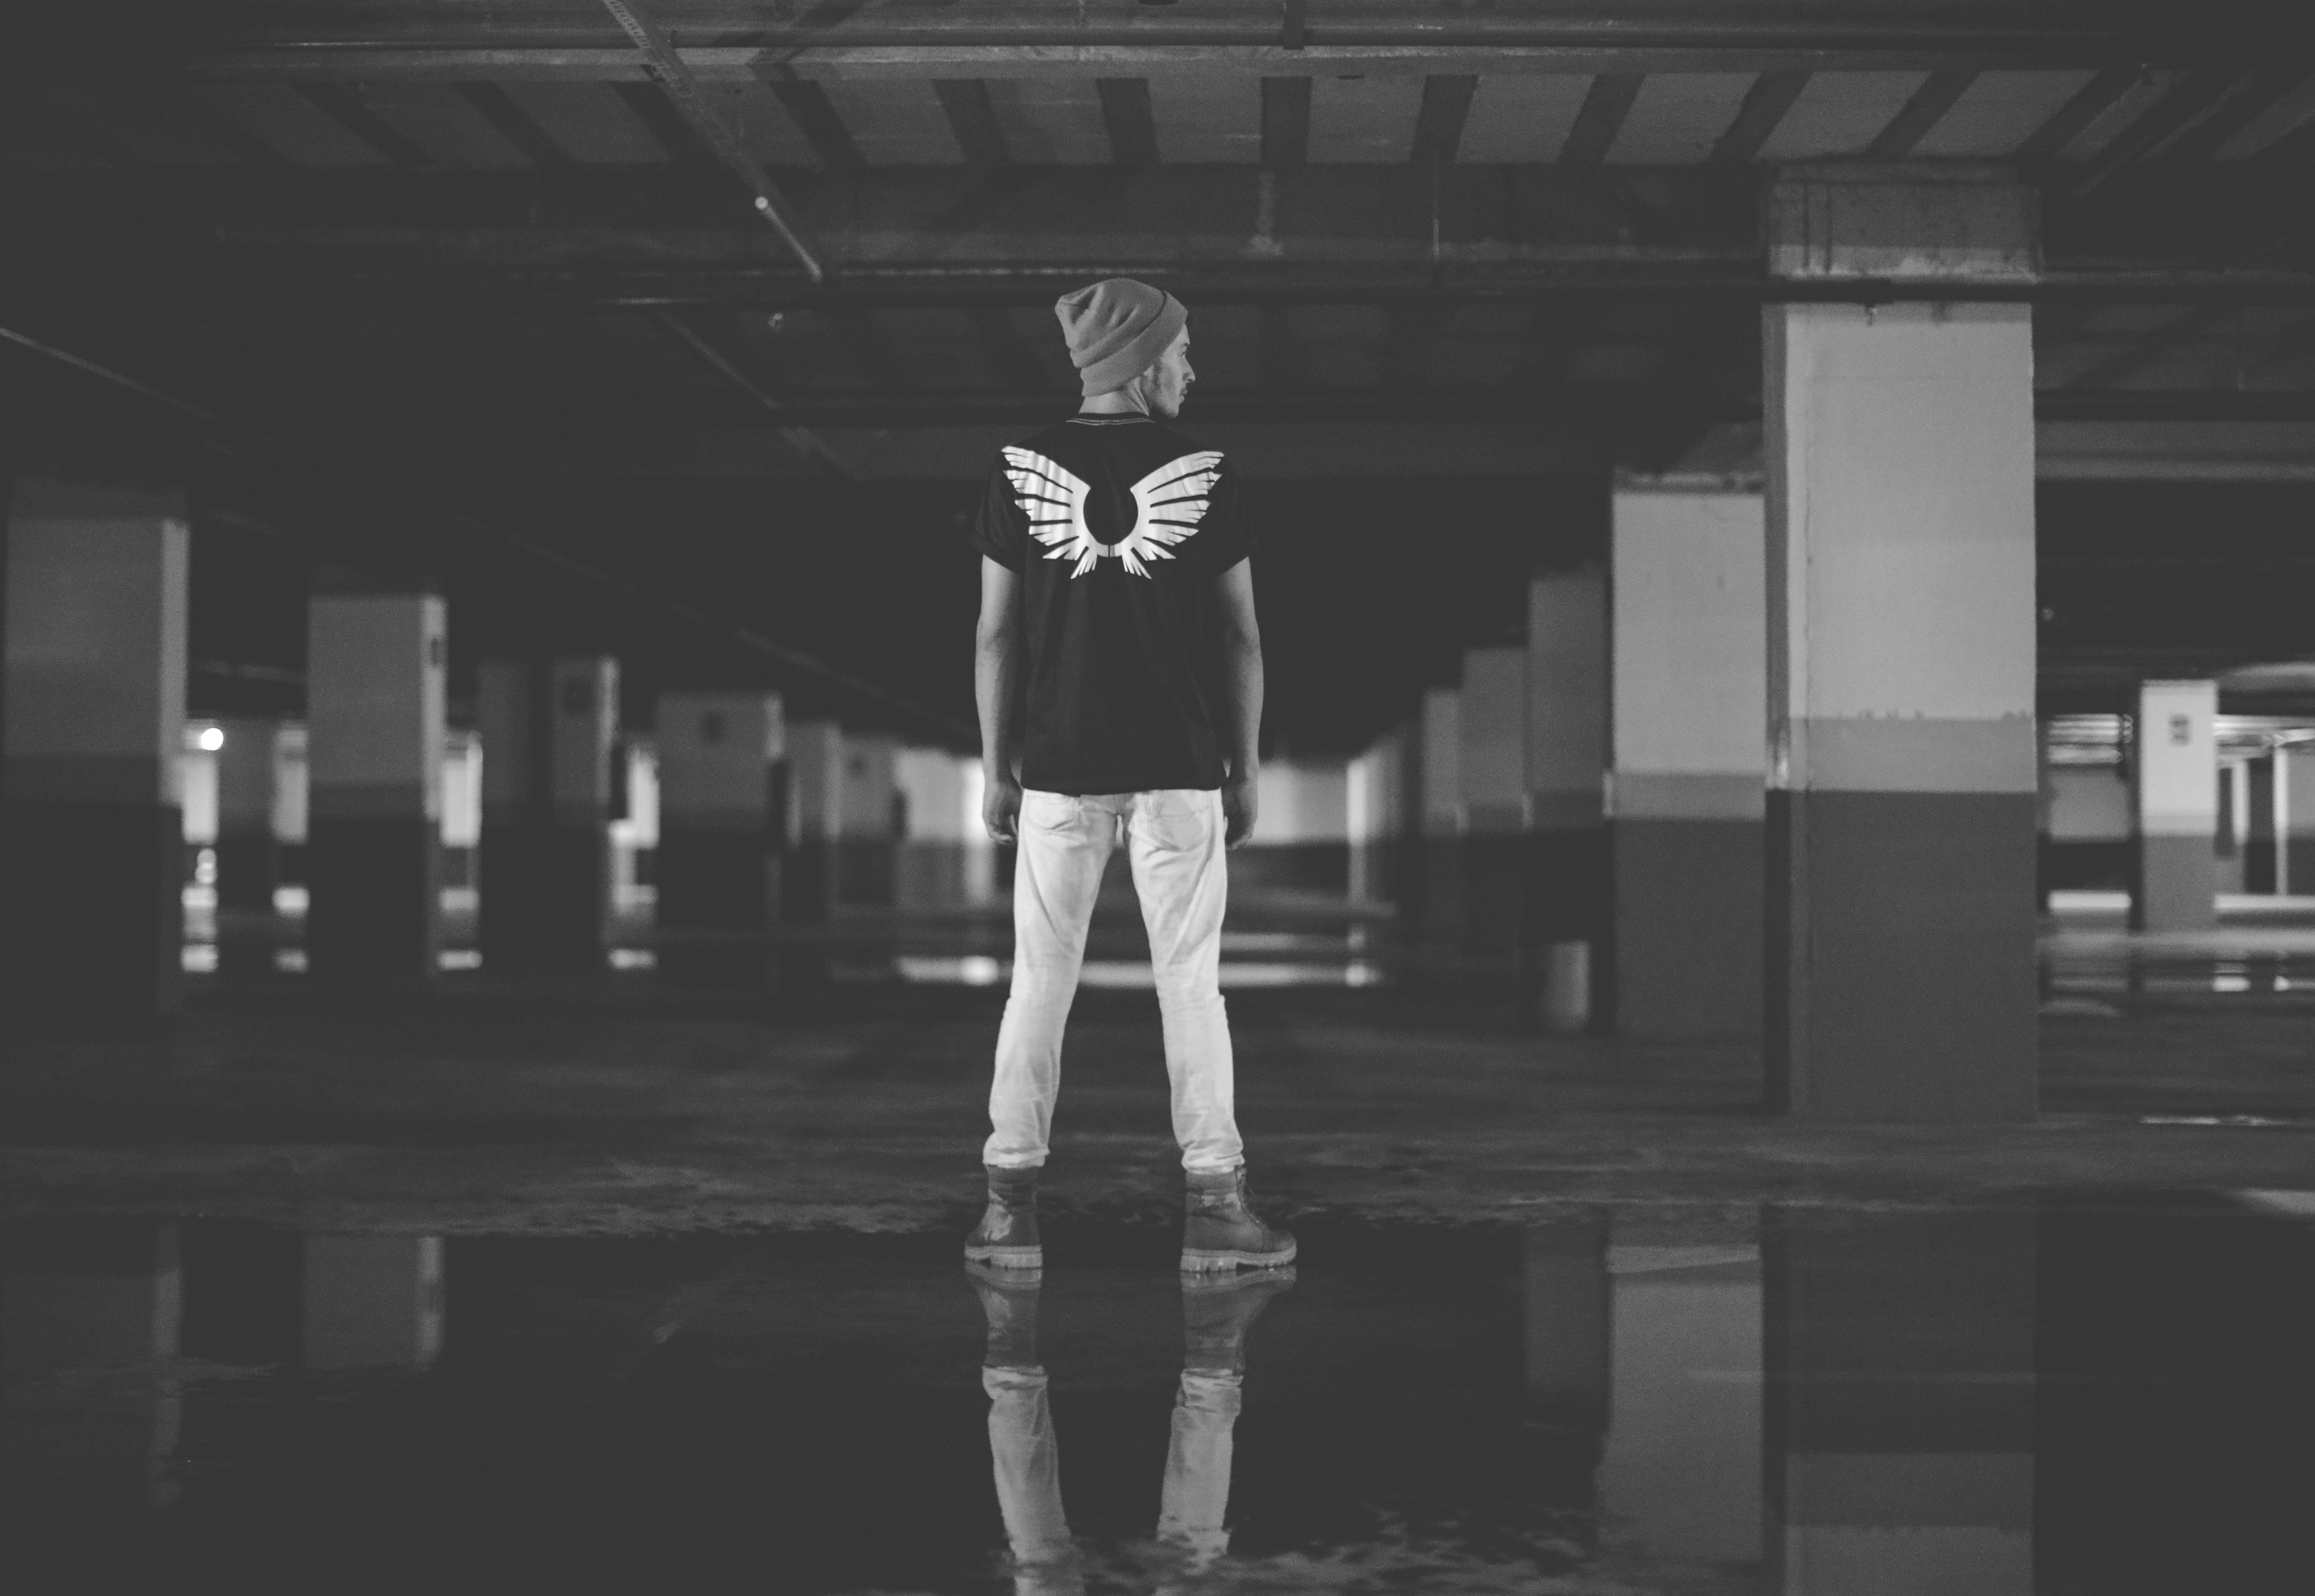 A man with wings on the back of his shirt looking in a parking garage